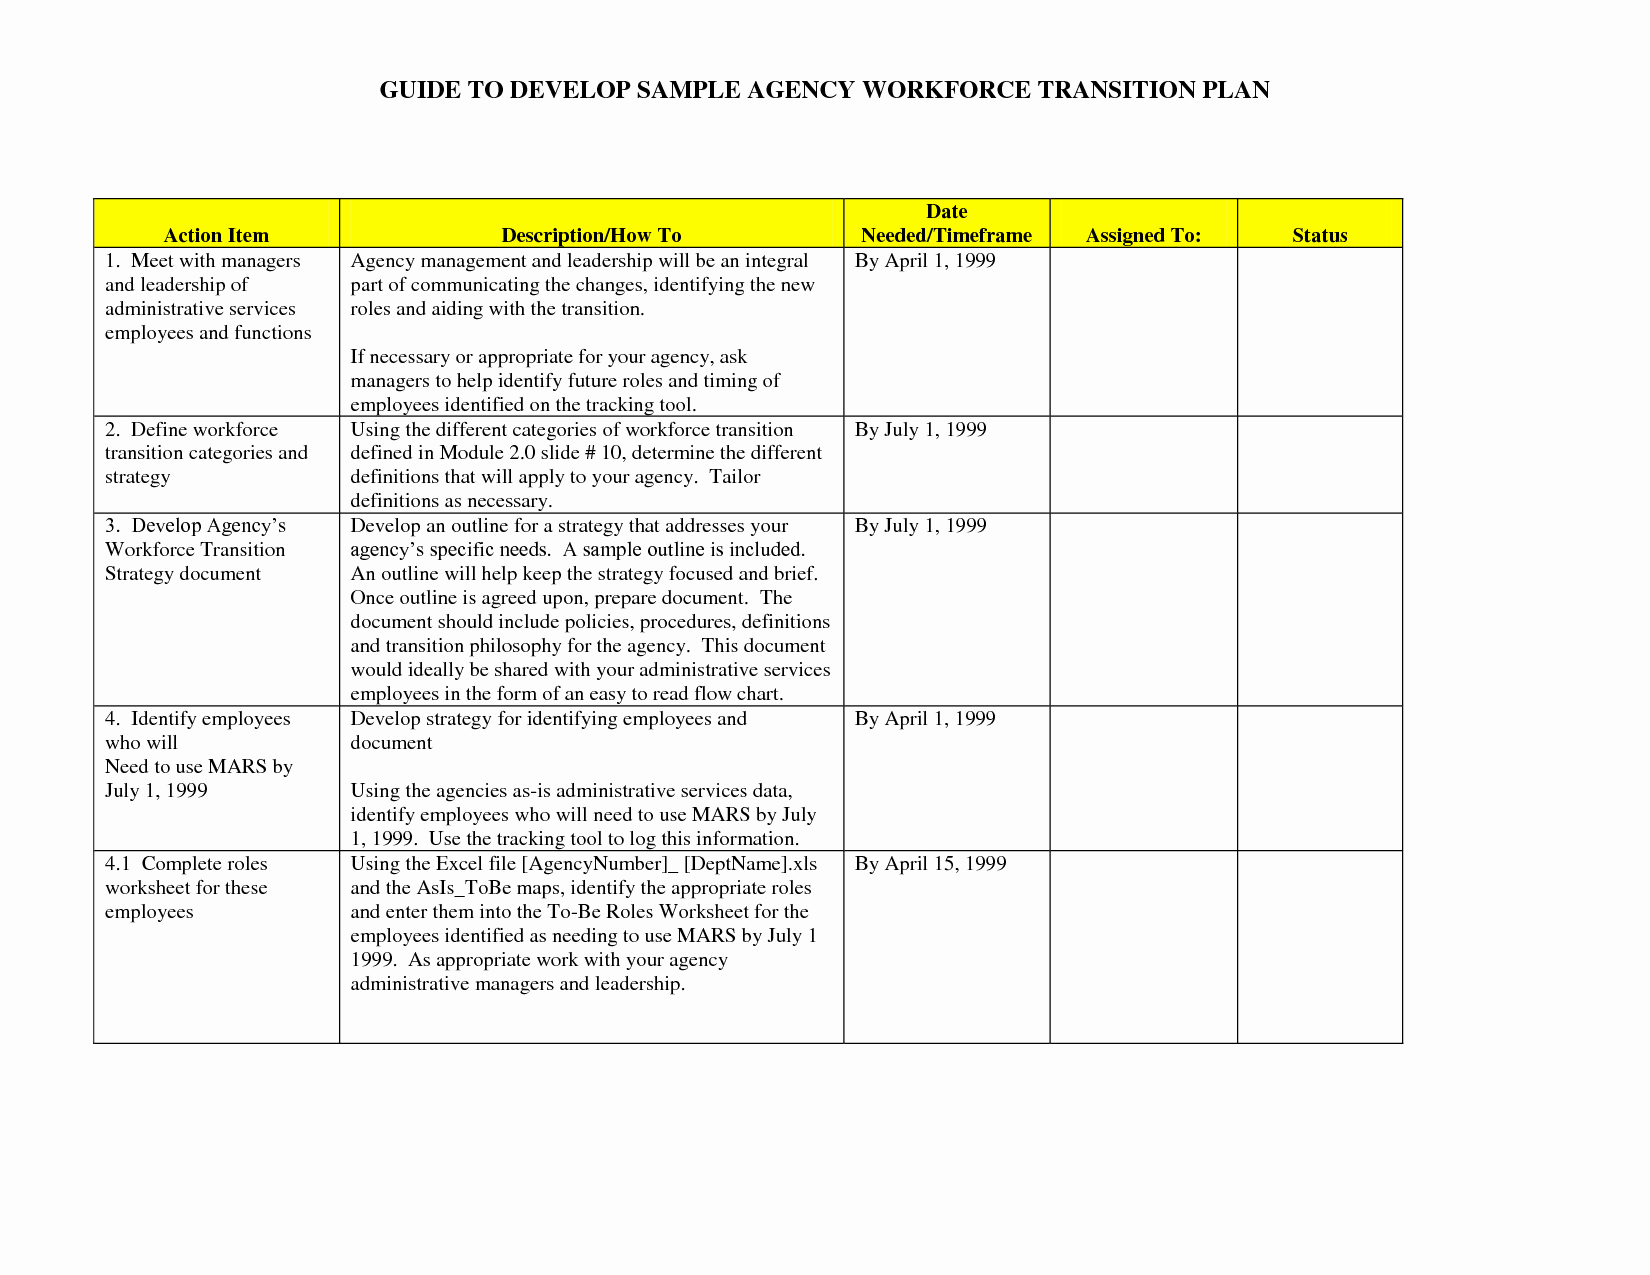 Project Management Transition Plan Template Elegant Transition Plan Template